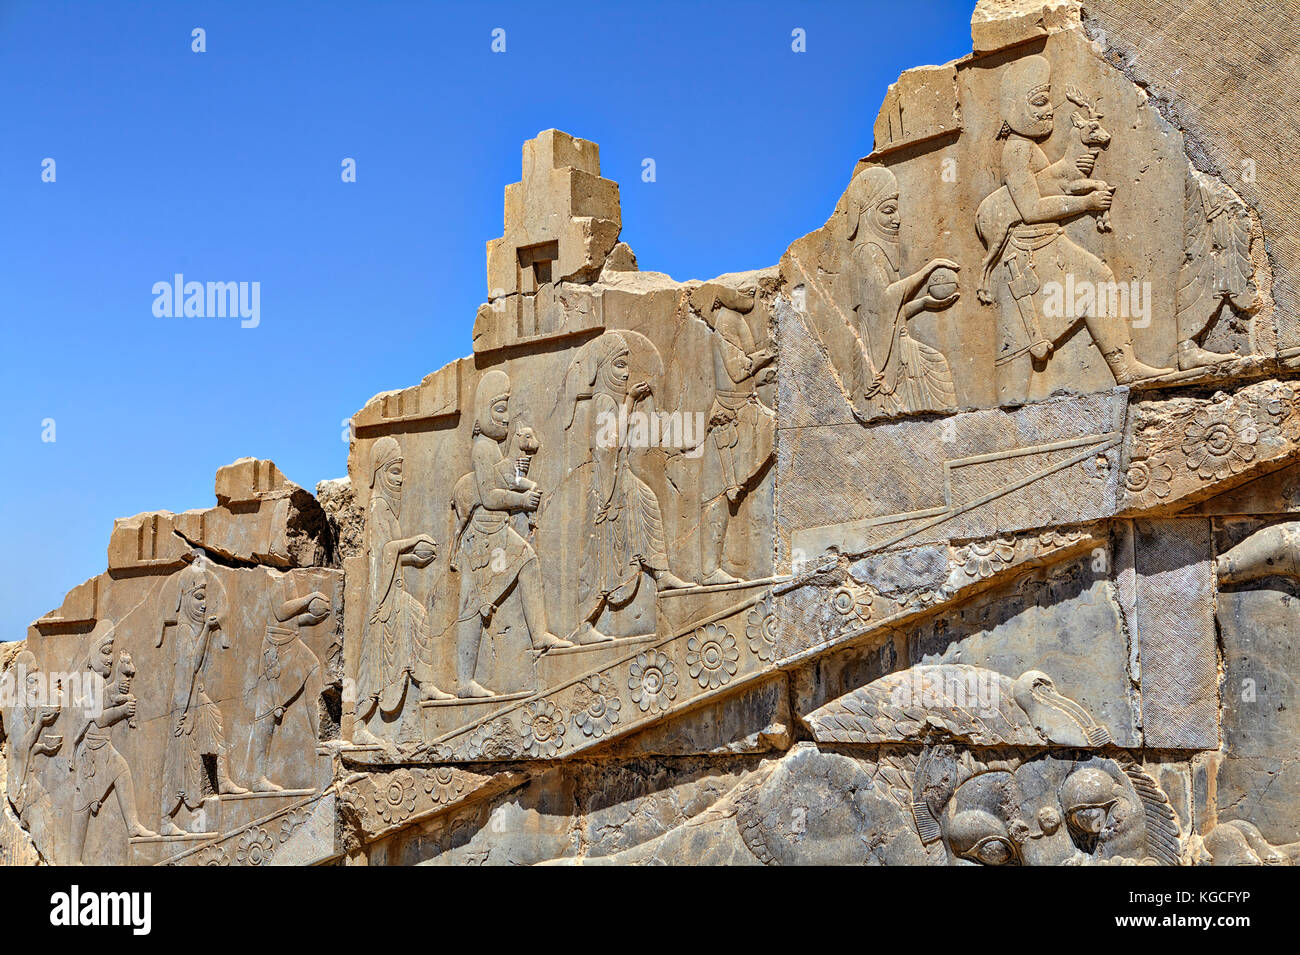 Relief carving ruins ancient persian stock photos